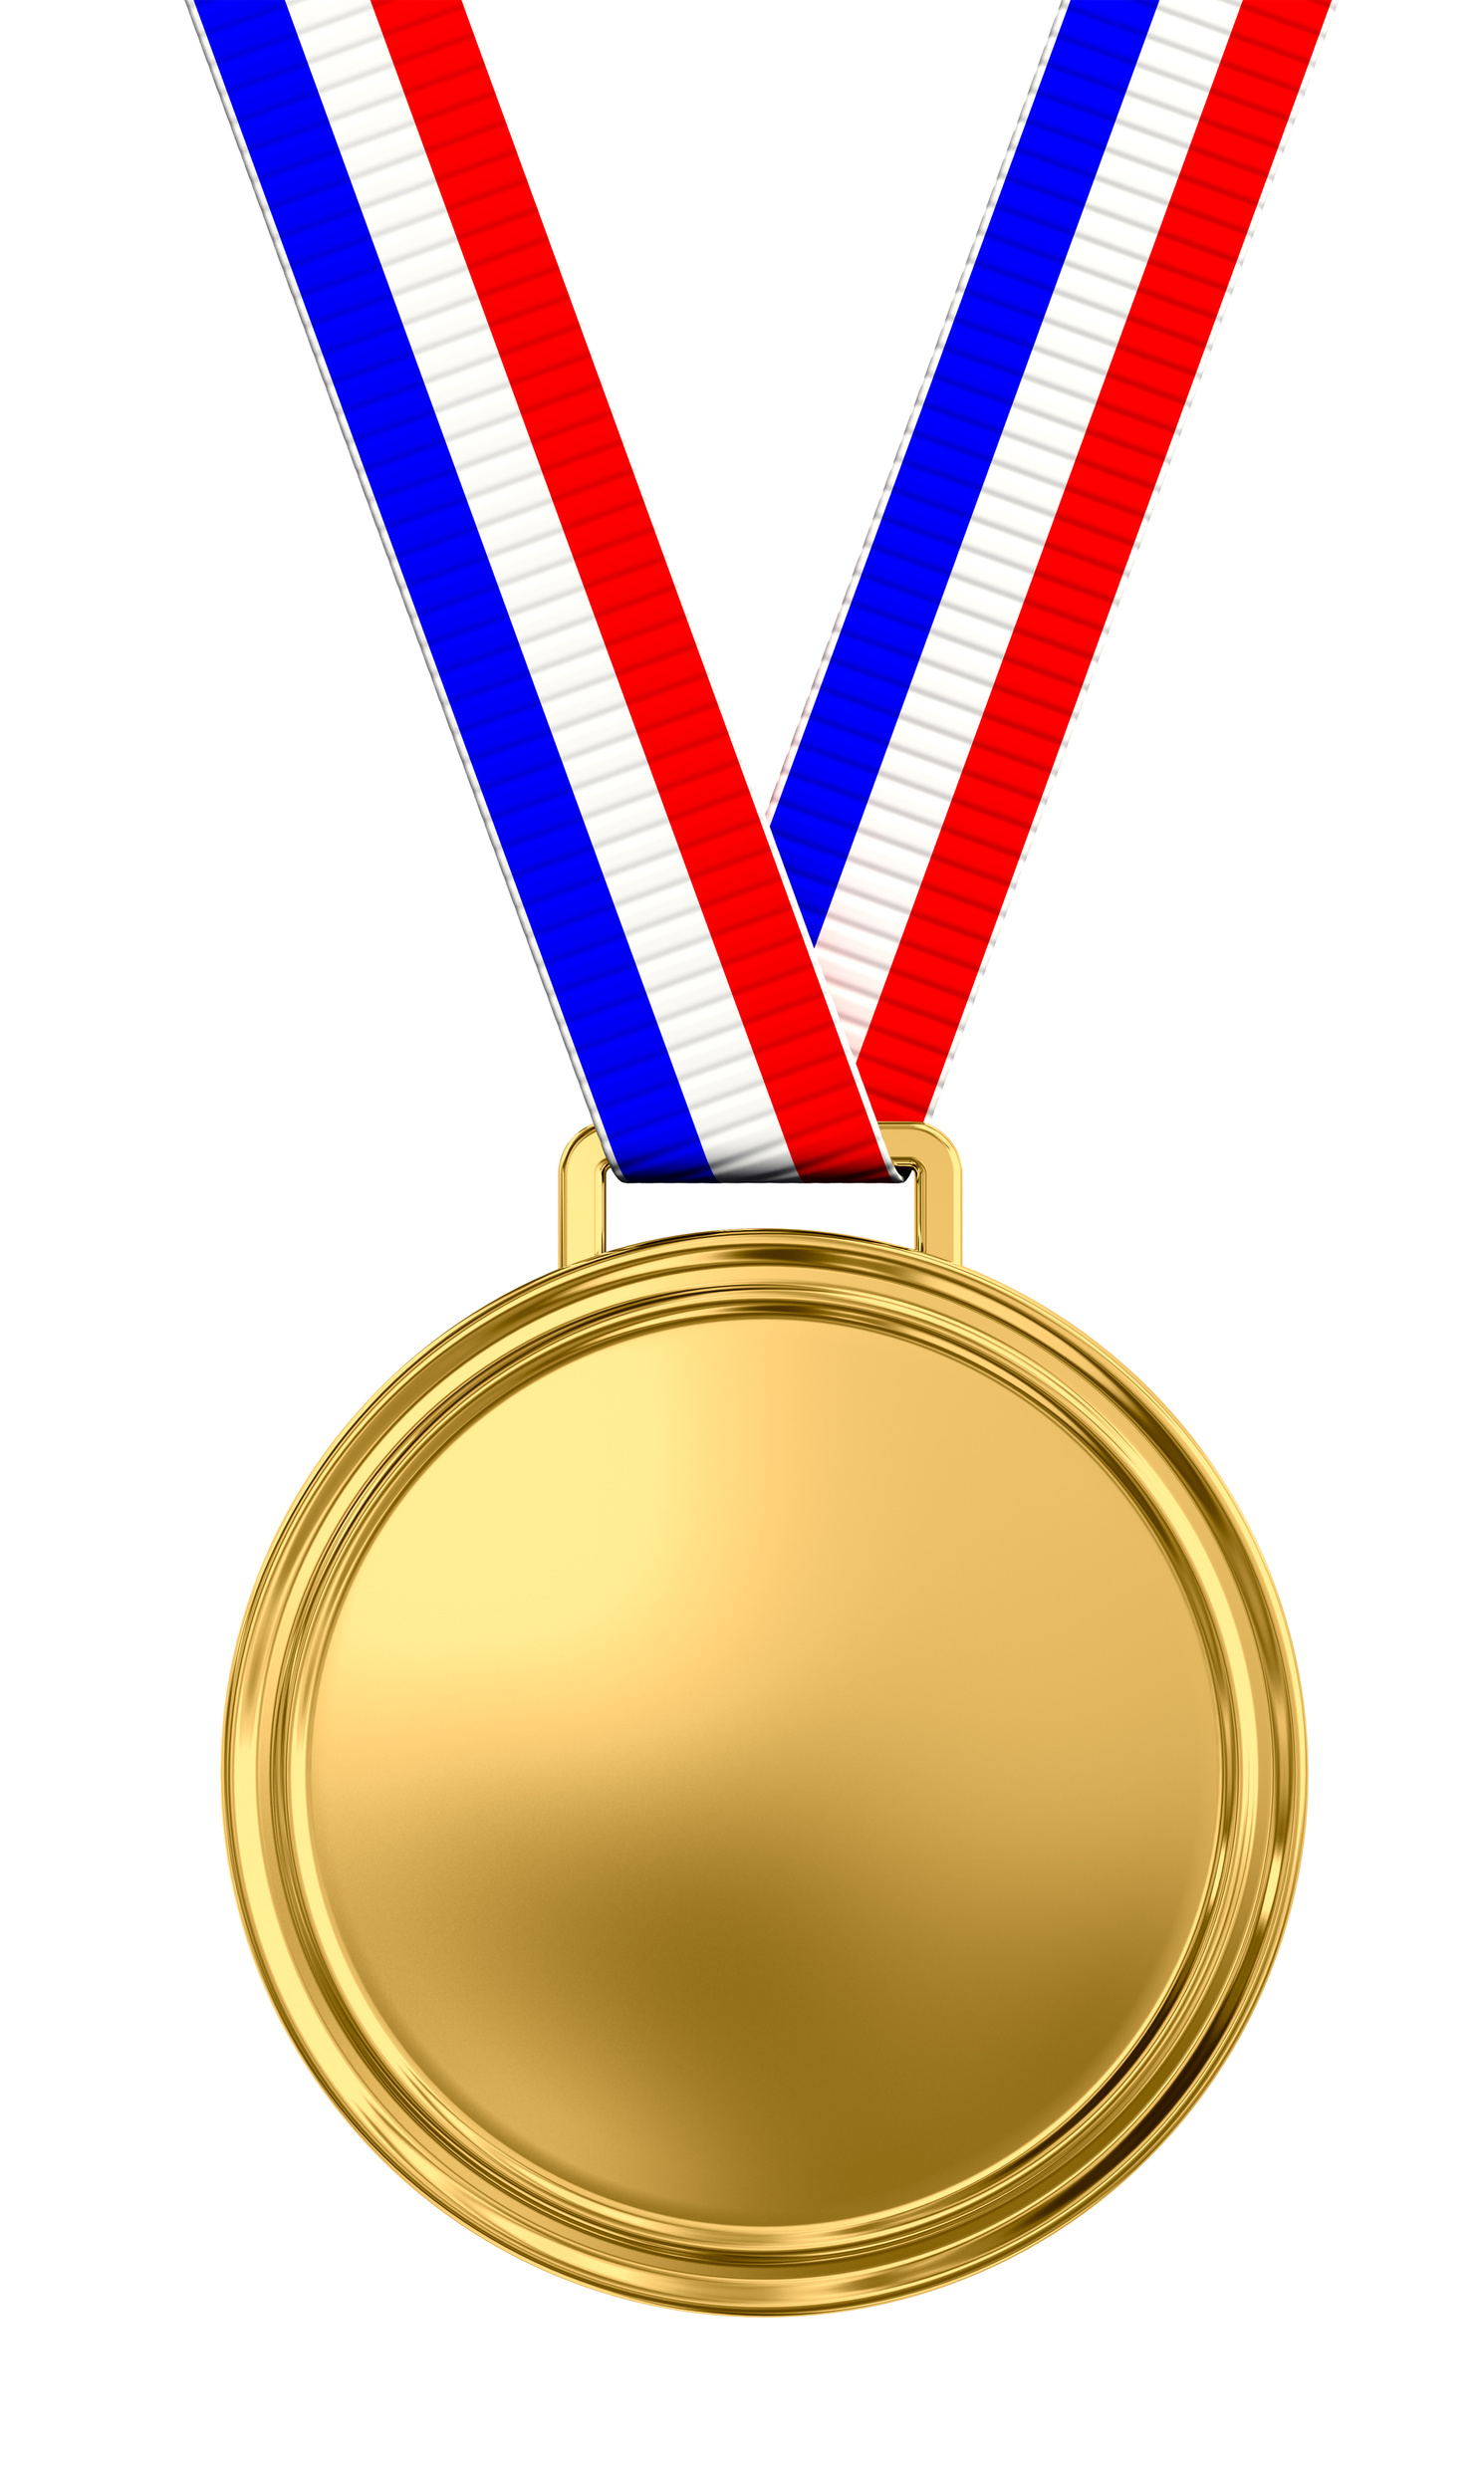 Medal and certificate clipart image black and white Free Medal Cliparts, Download Free Clip Art, Free Clip Art on ... image black and white